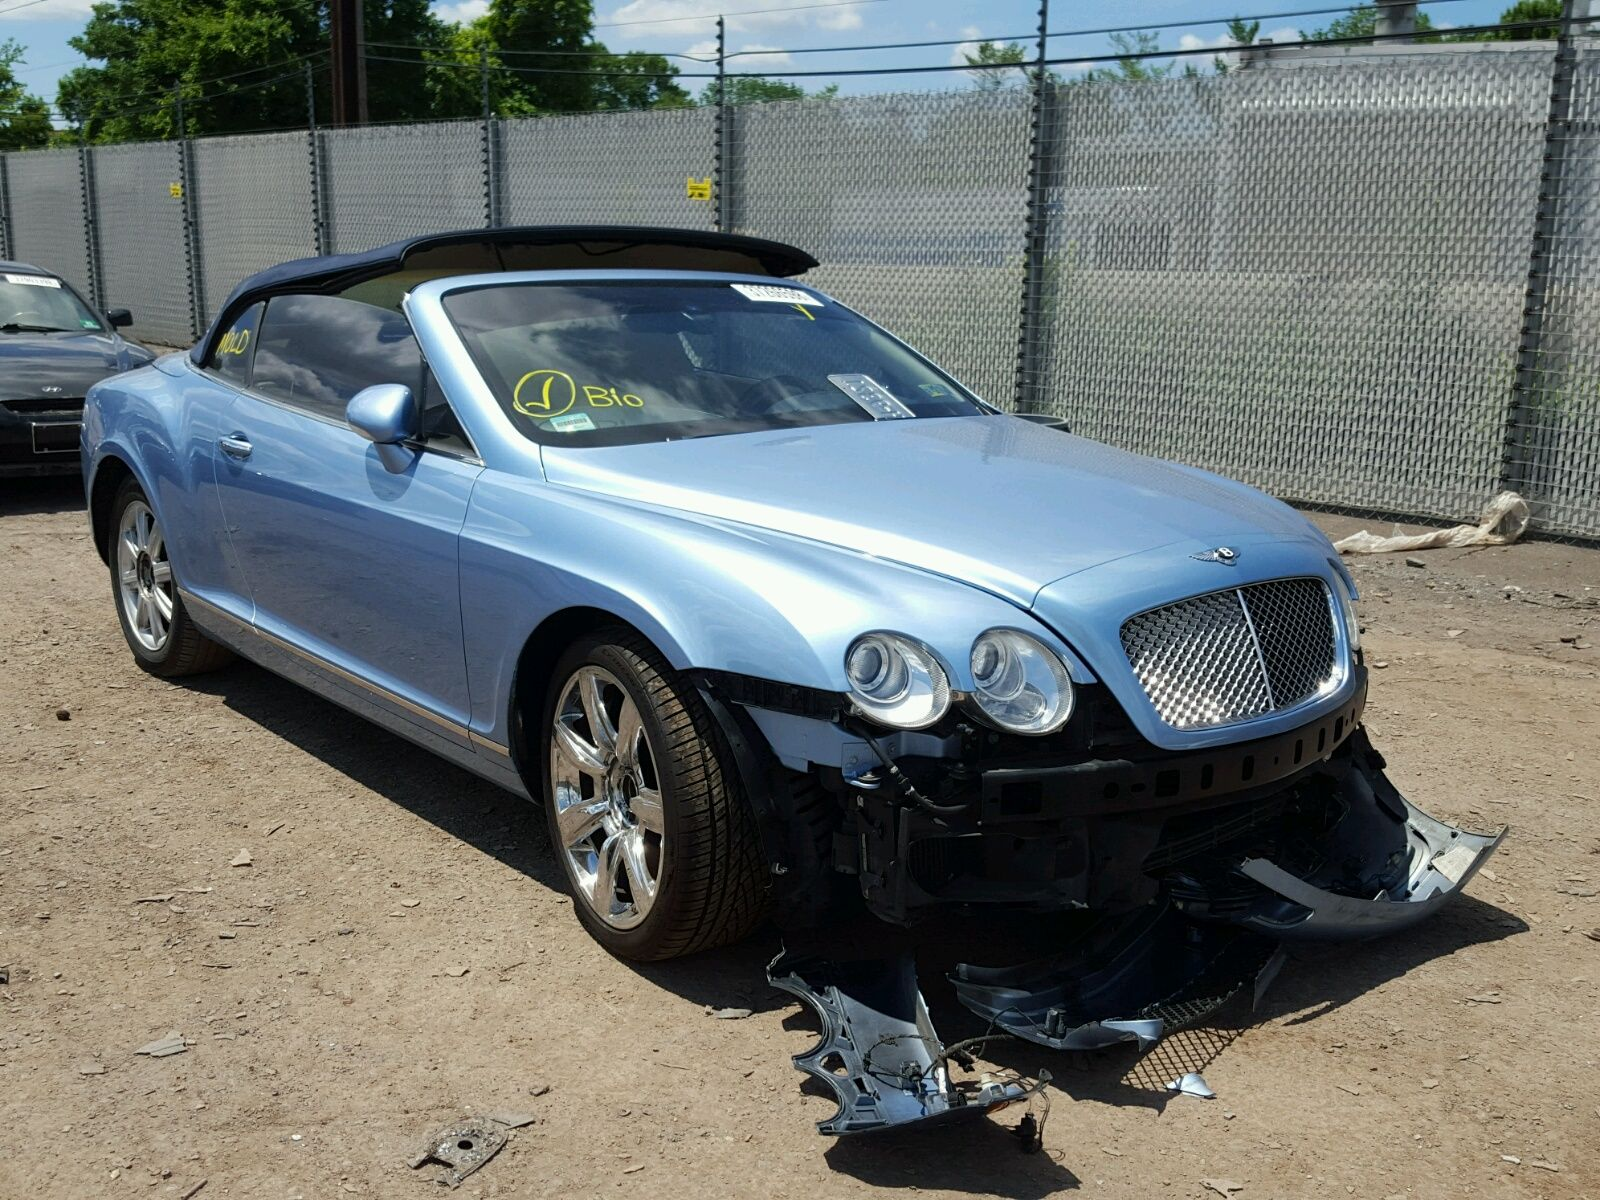 A crap Bentley